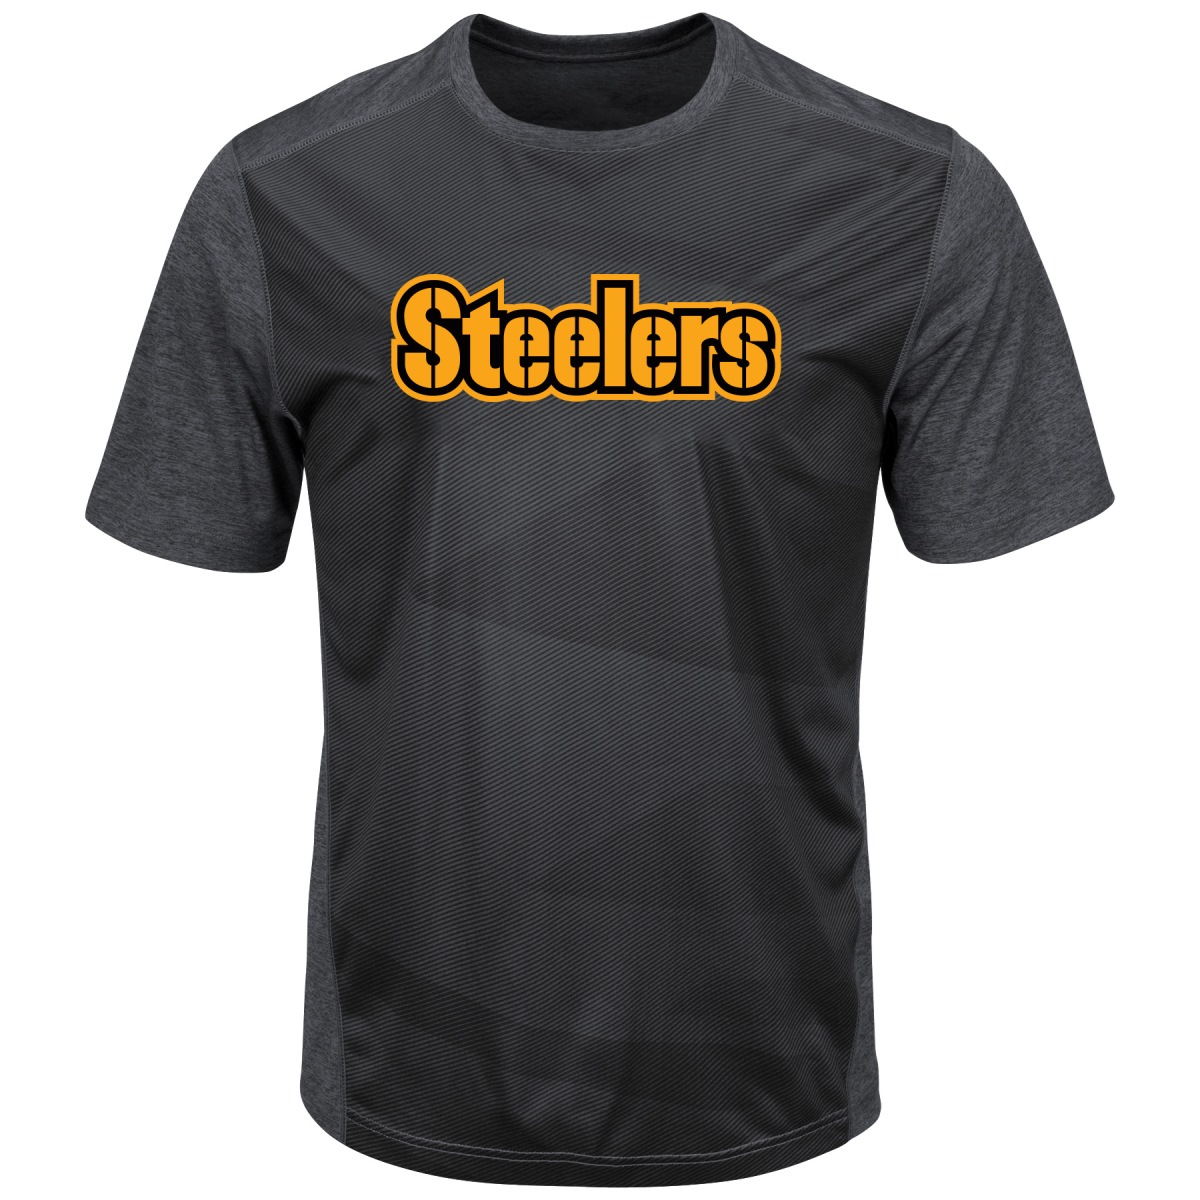 "Pittsburgh Steelers Majestic NFL ""Gridiron"" Men's Premium Reflective T-Shirt"